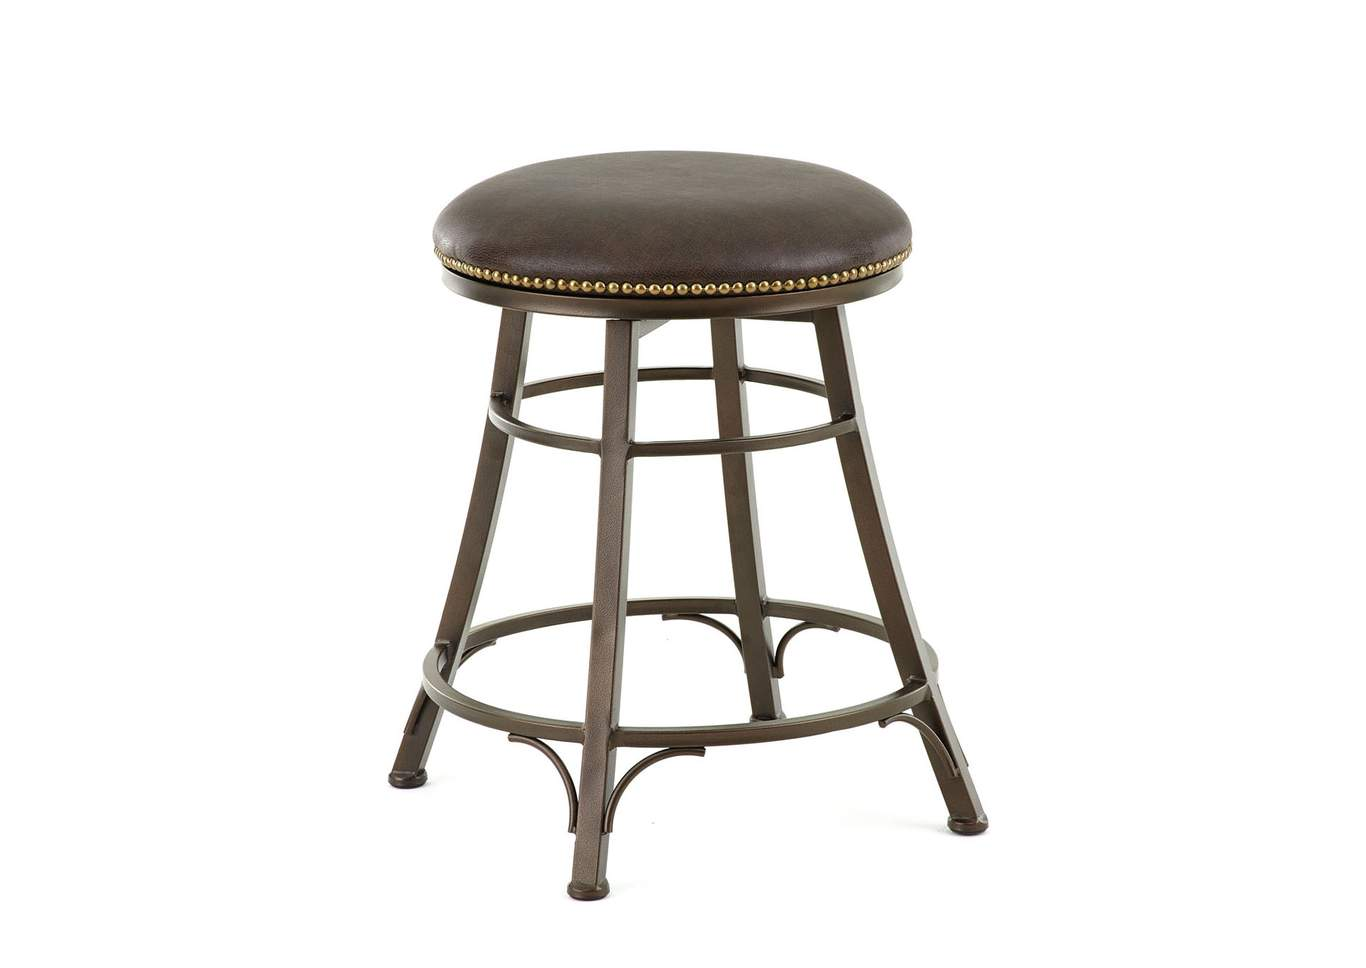 Bali Brown Swivel Counter Stools [Set of 2],Steve Silver